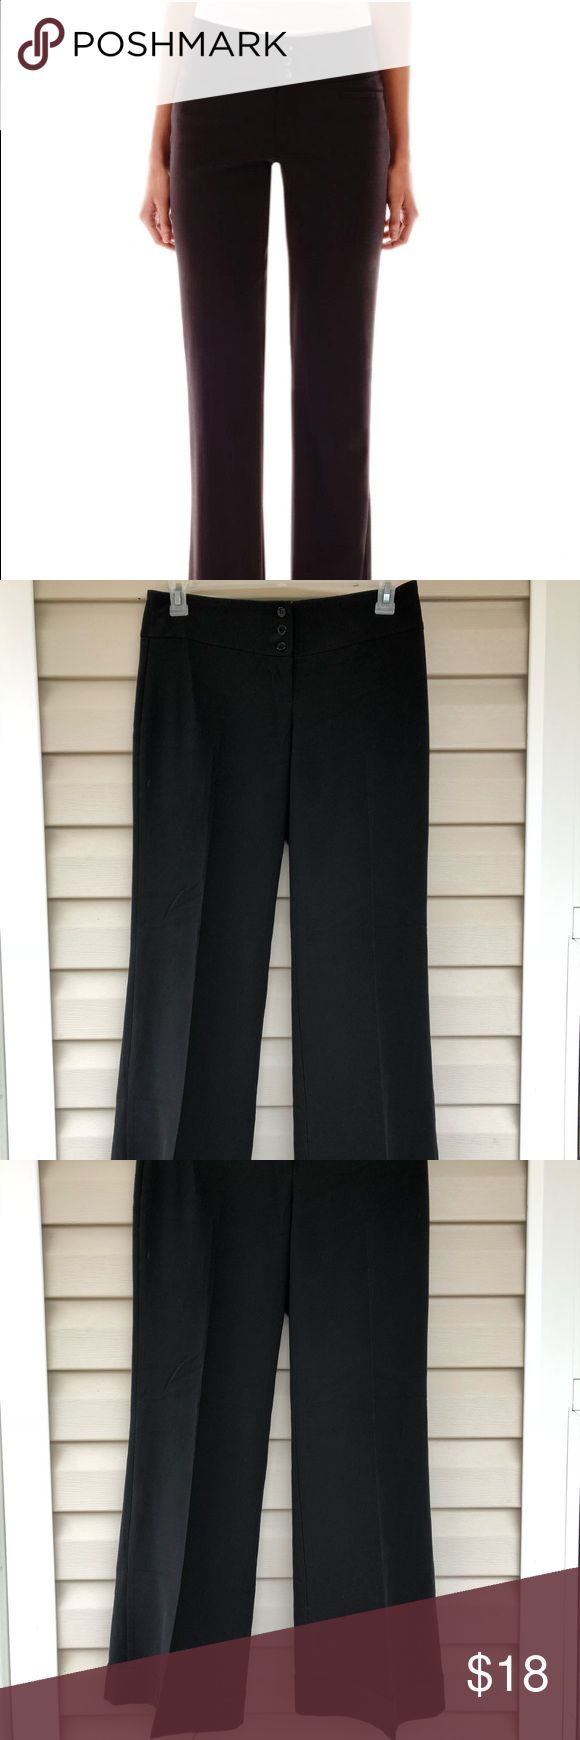 "Hollywood 'perfect fit' Waistband Slacks/Pants Black stretch women's slacks with a 3-button closure waistband. Slight Flare fit with an inseam length of 31"". Size 7. Spring Street Pants Trousers"